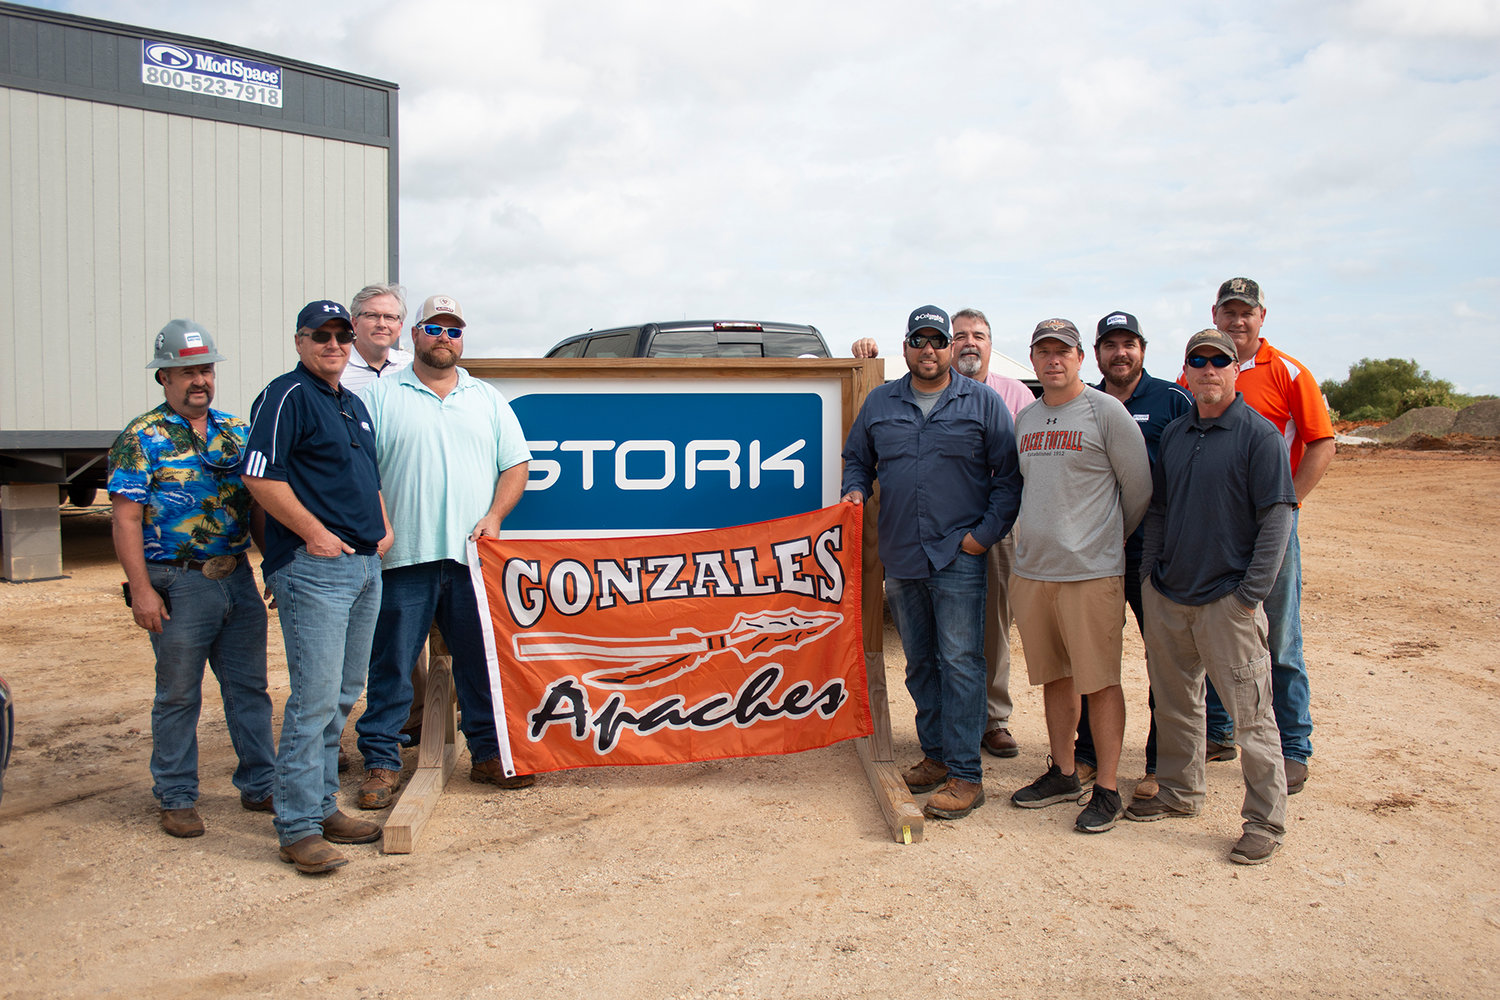 Picture J.D. Woolery (STORK), Steve Register (STORK), Sam Richardson (BYK), Kevin Morris (STORK), Jesse Martinez (STORK), Glen West (BYK), Gonzales ISD Athletic Director Kodi Crane, Isaac Beard (STORK), Gordon Russell (STORK), and Apache Athletic Booster Club President Brian Sample.